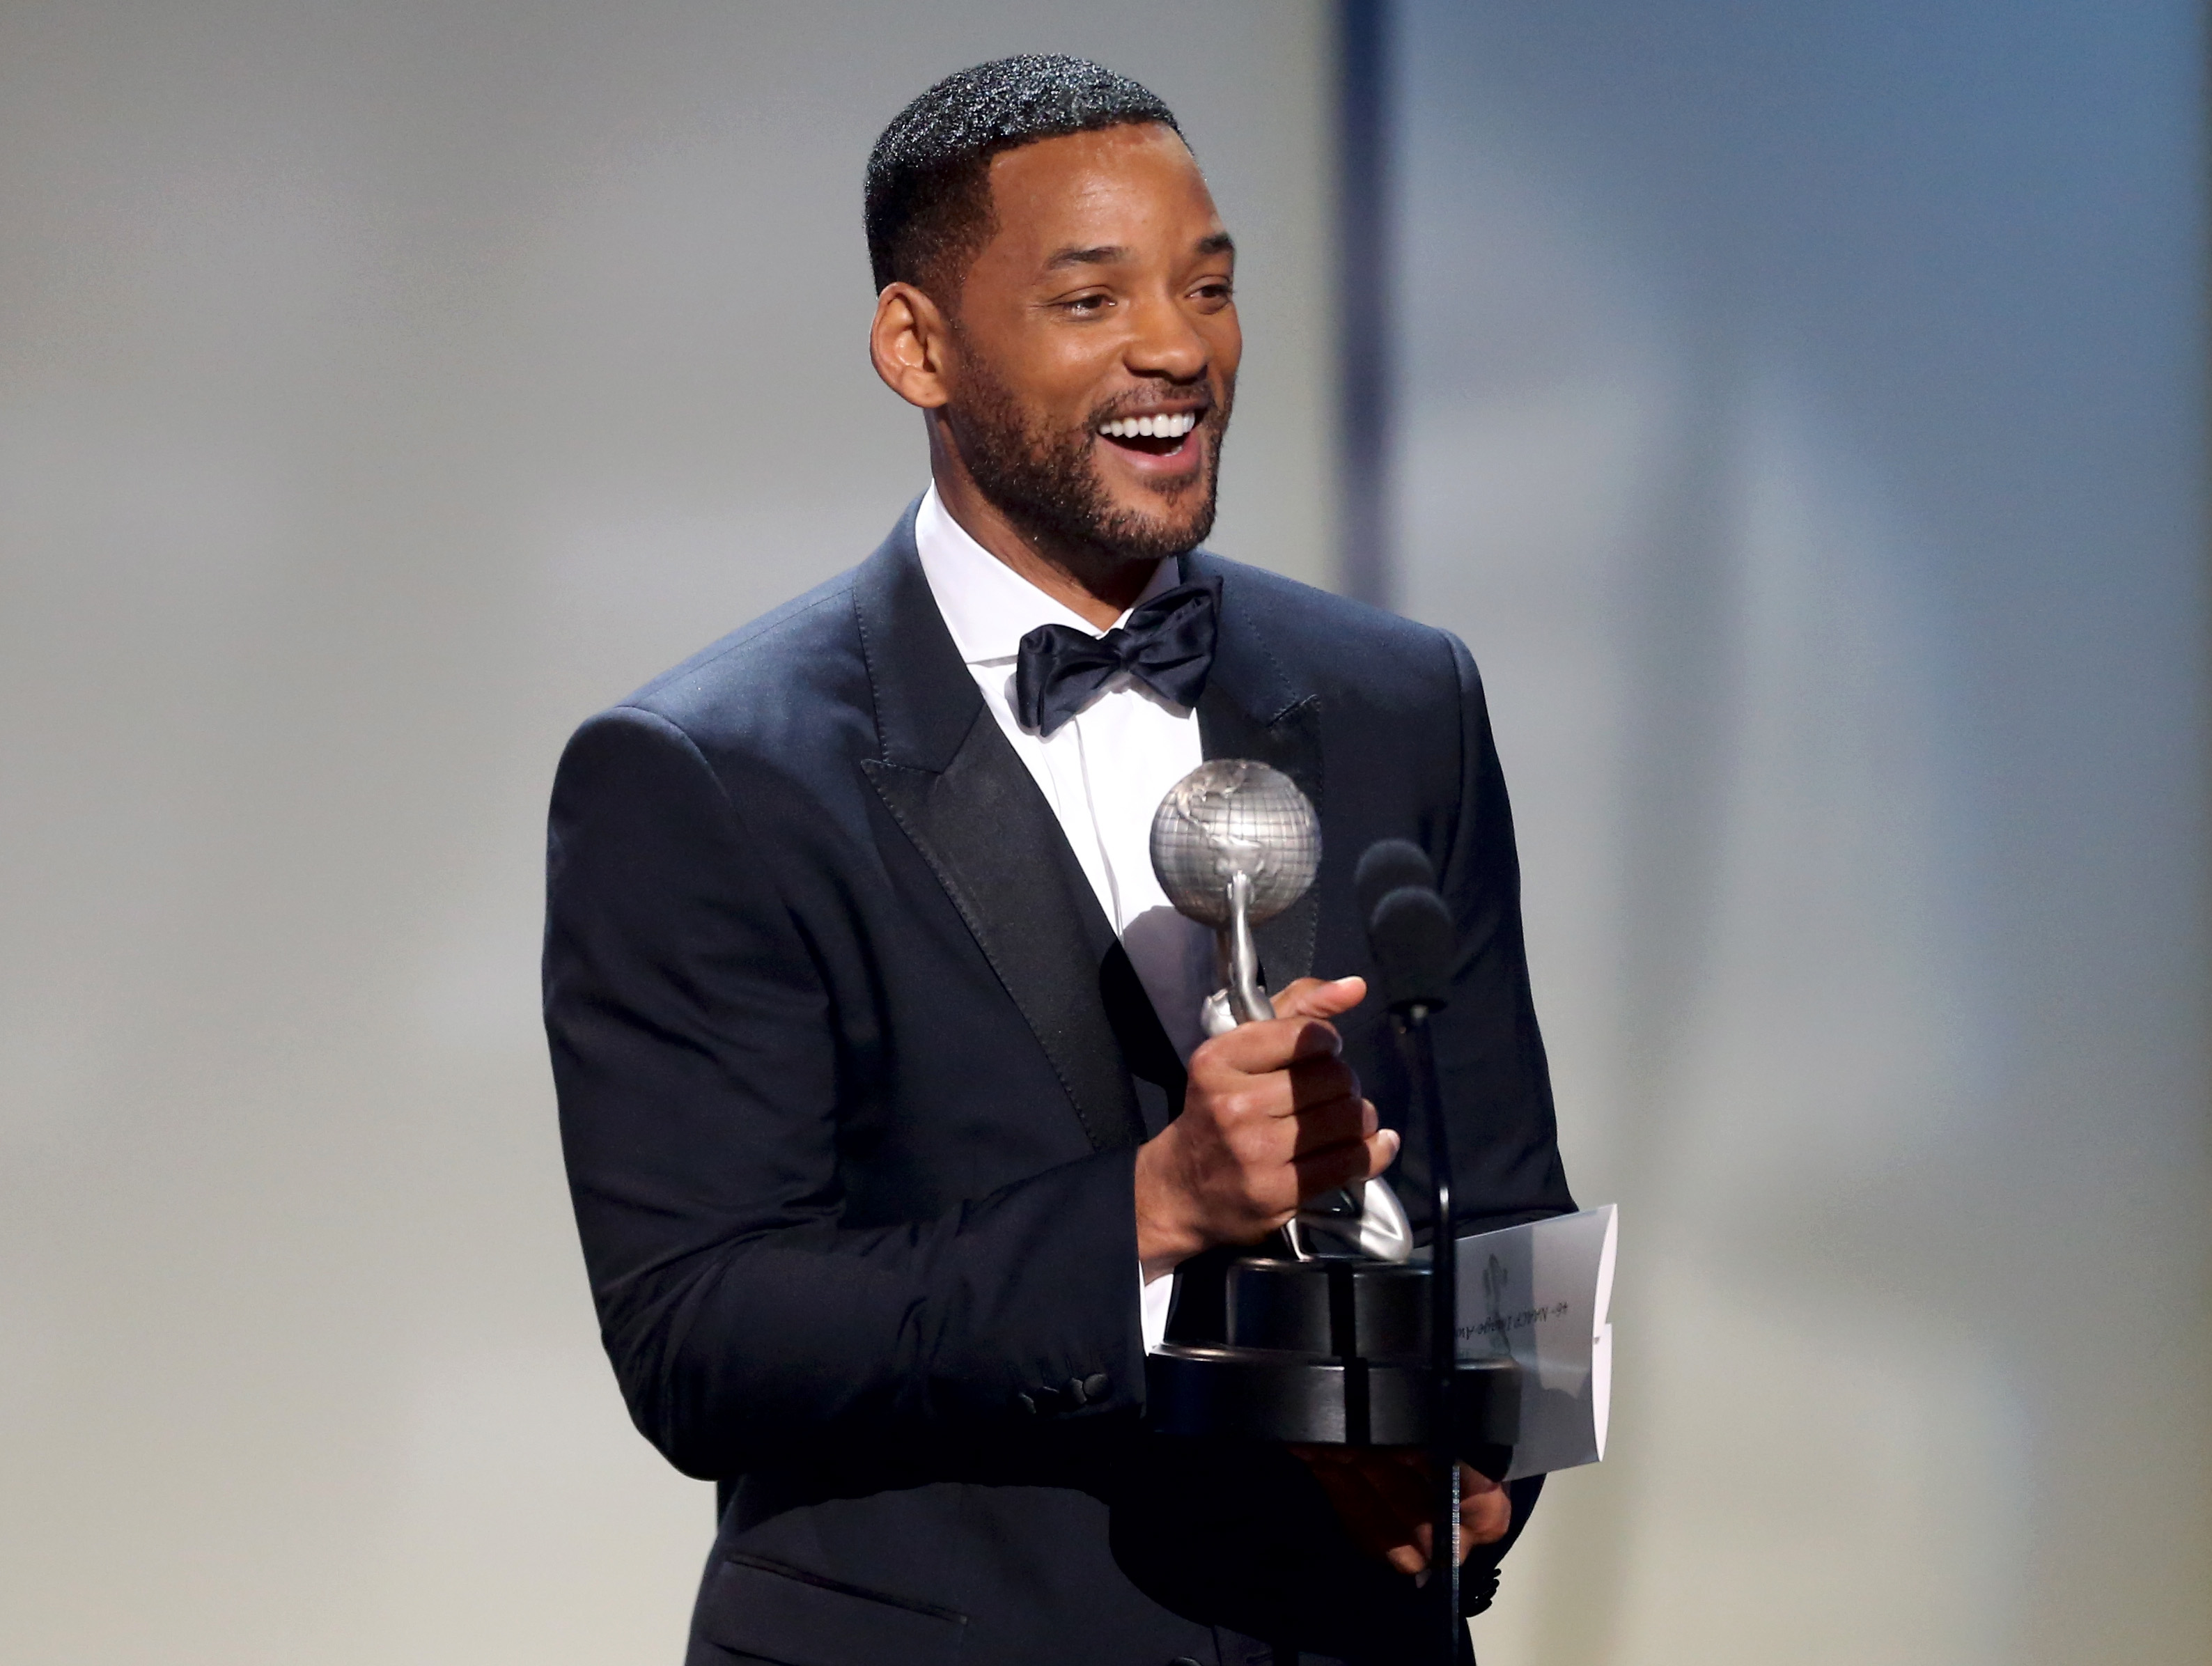 WILL SMITH HAS A 'FOCUS' ON HIS CAREER AGAIN